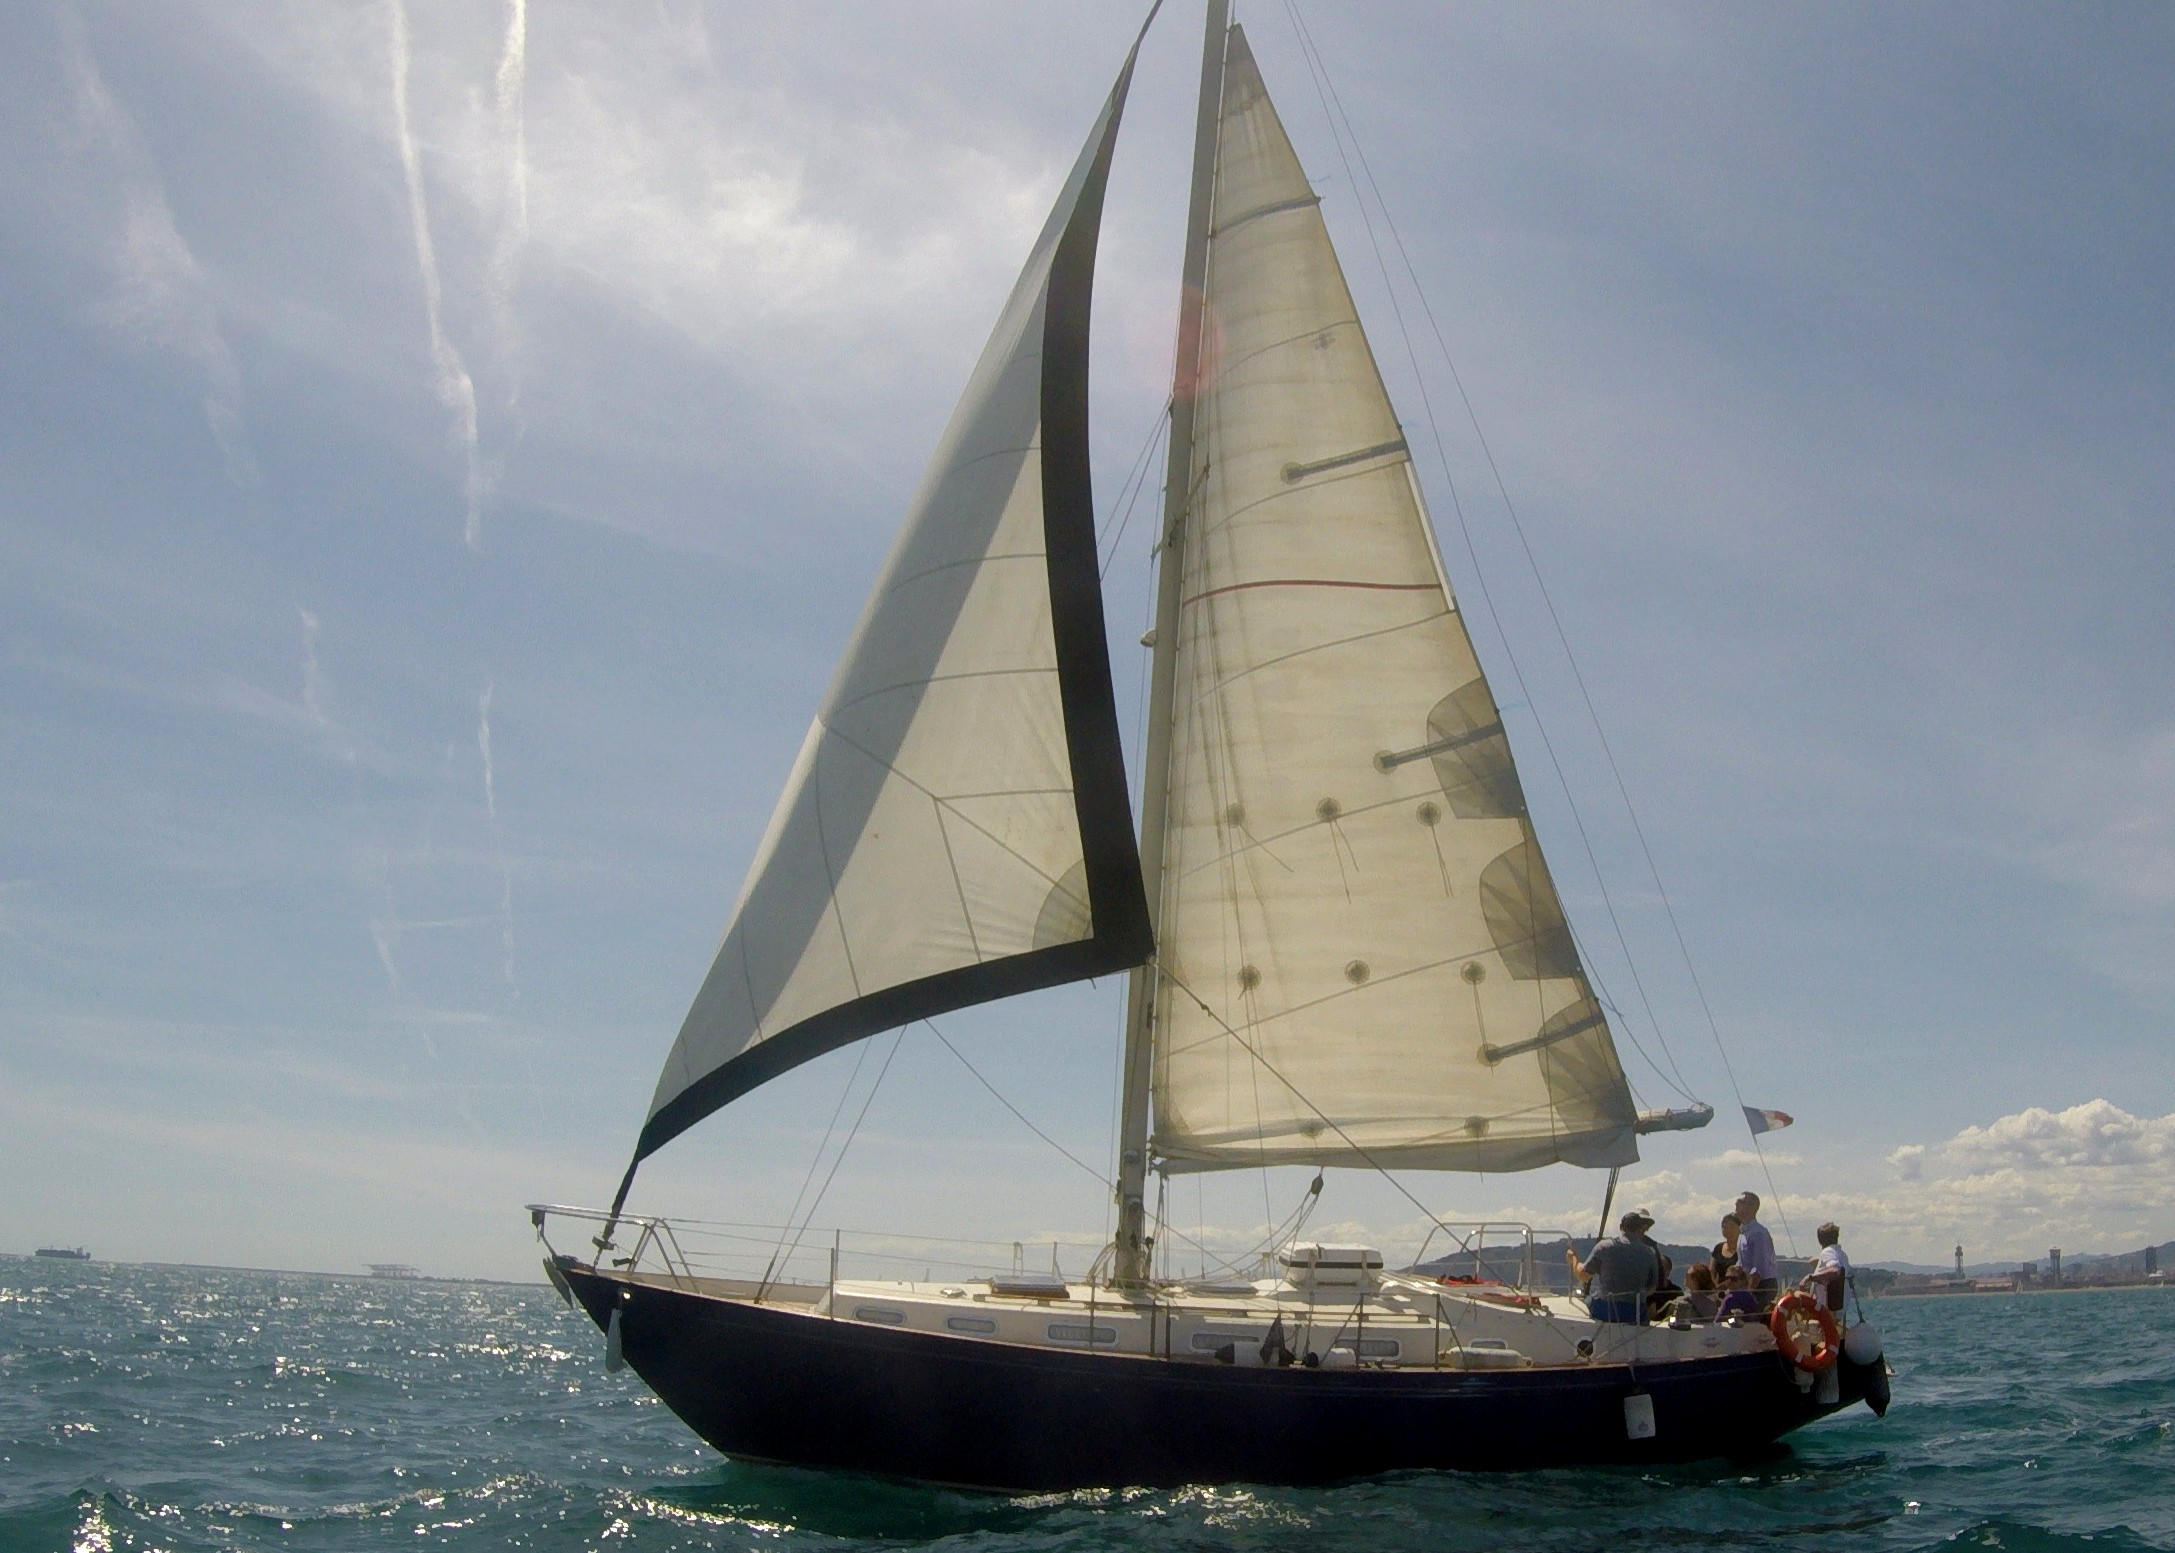 38 ft Manhe Classic Sailboat